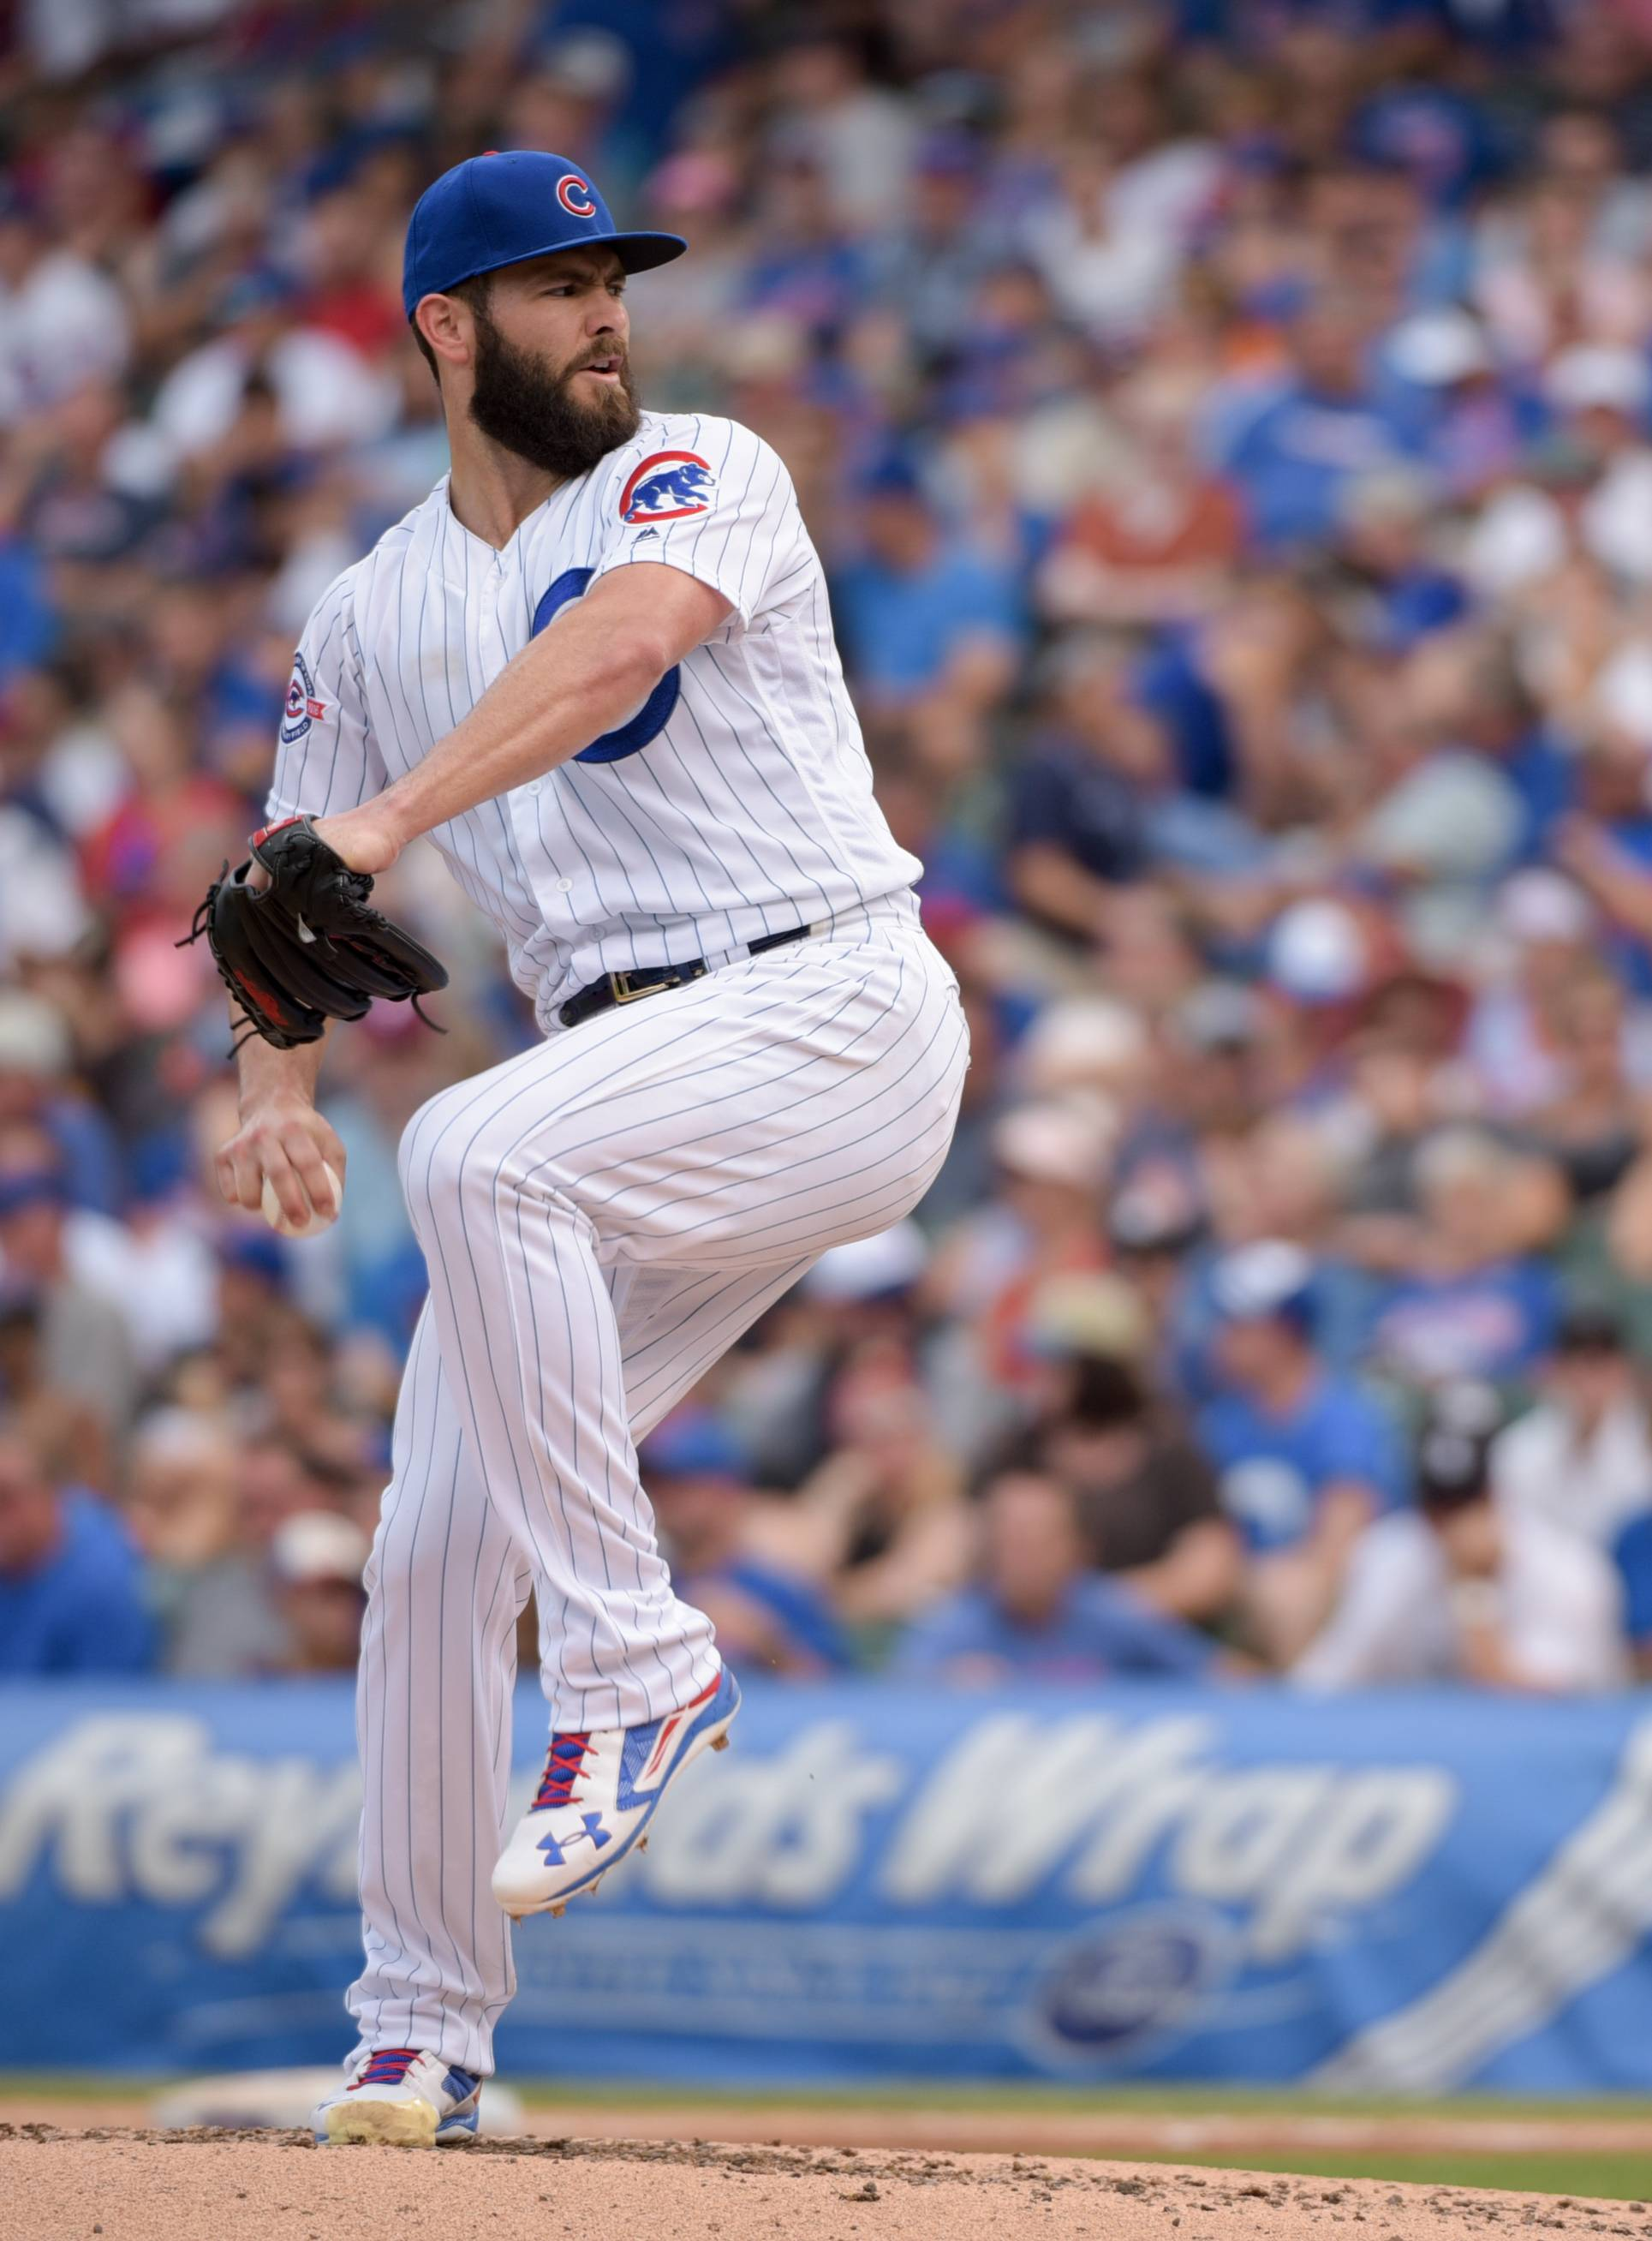 Cubs starting pitcher Jake Arrieta is the defending NL Cy Young Award winner. His ERA is 2.62.